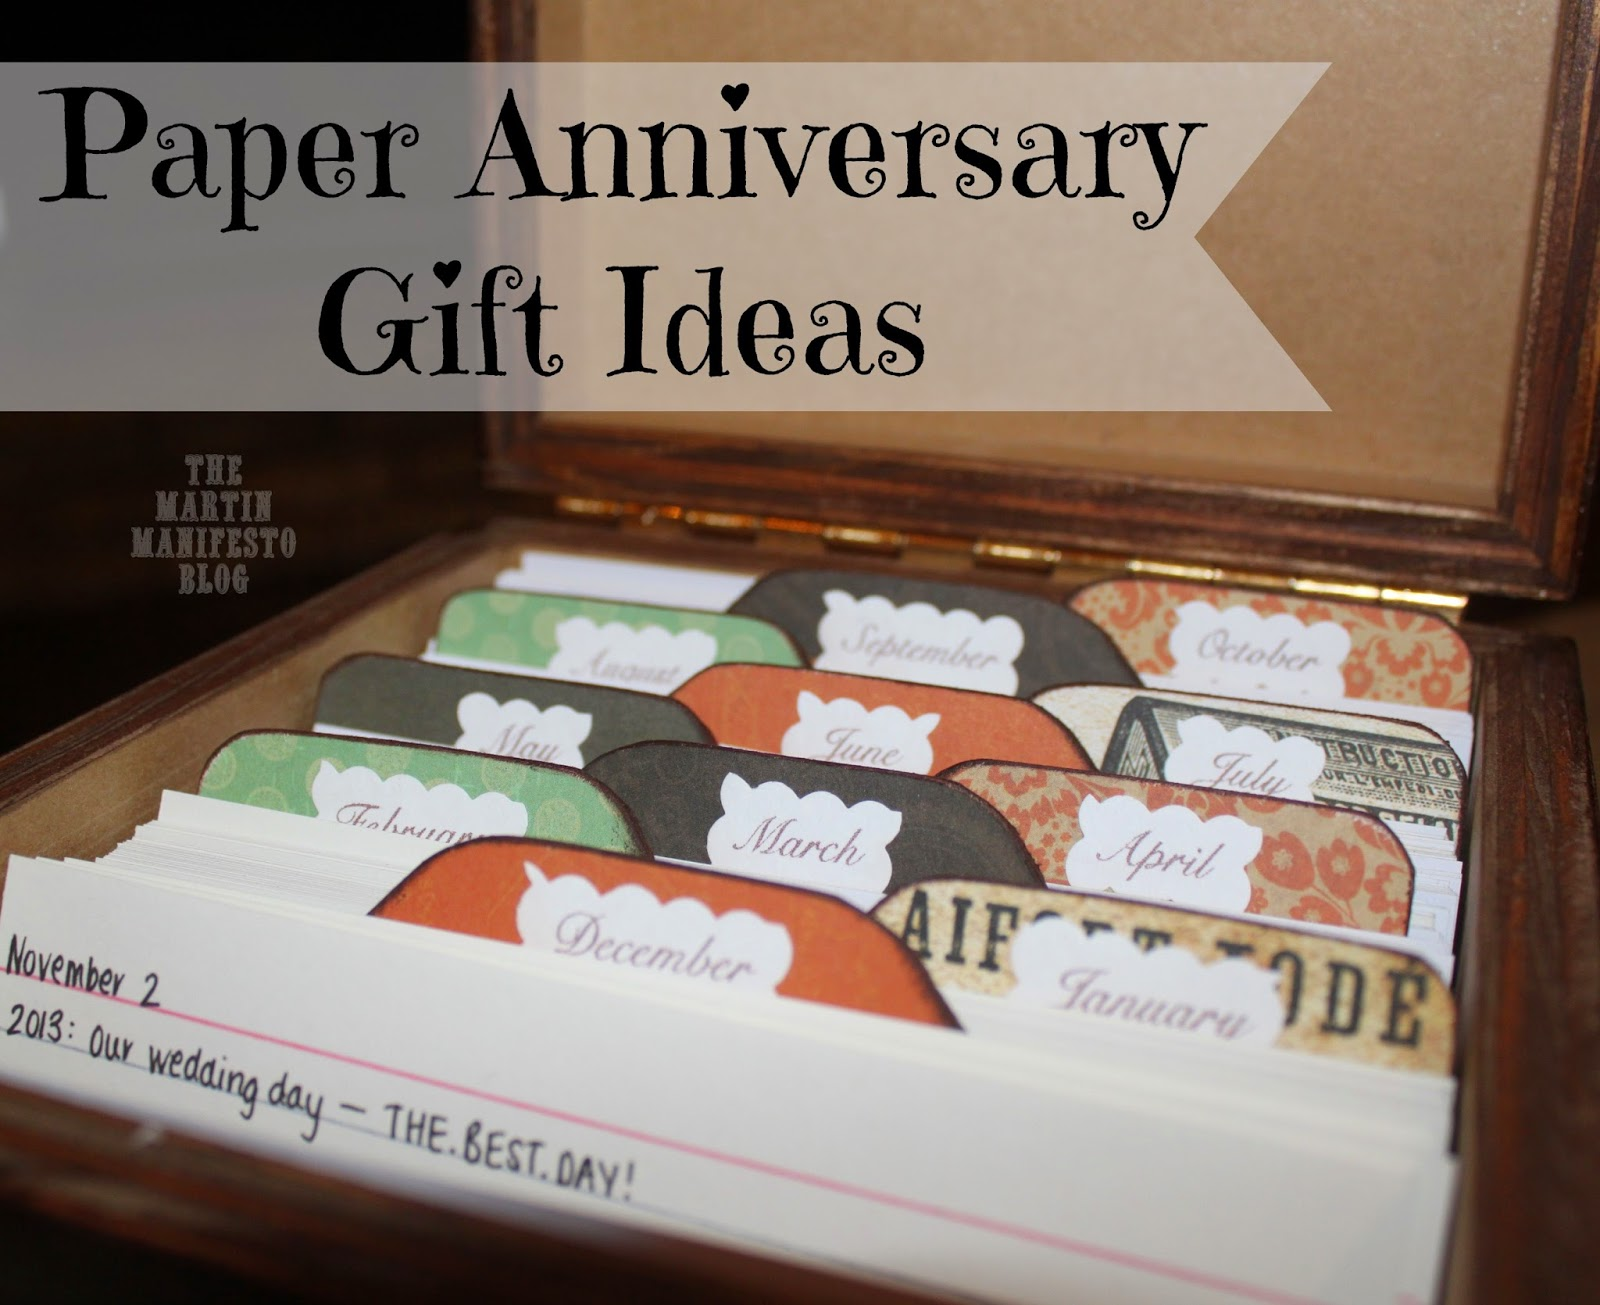 1 Year Wedding Anniversary Gift Ideas Paper : ... Ideas Related Keywords & Suggestions - Paper Anniversary Gift Ideas